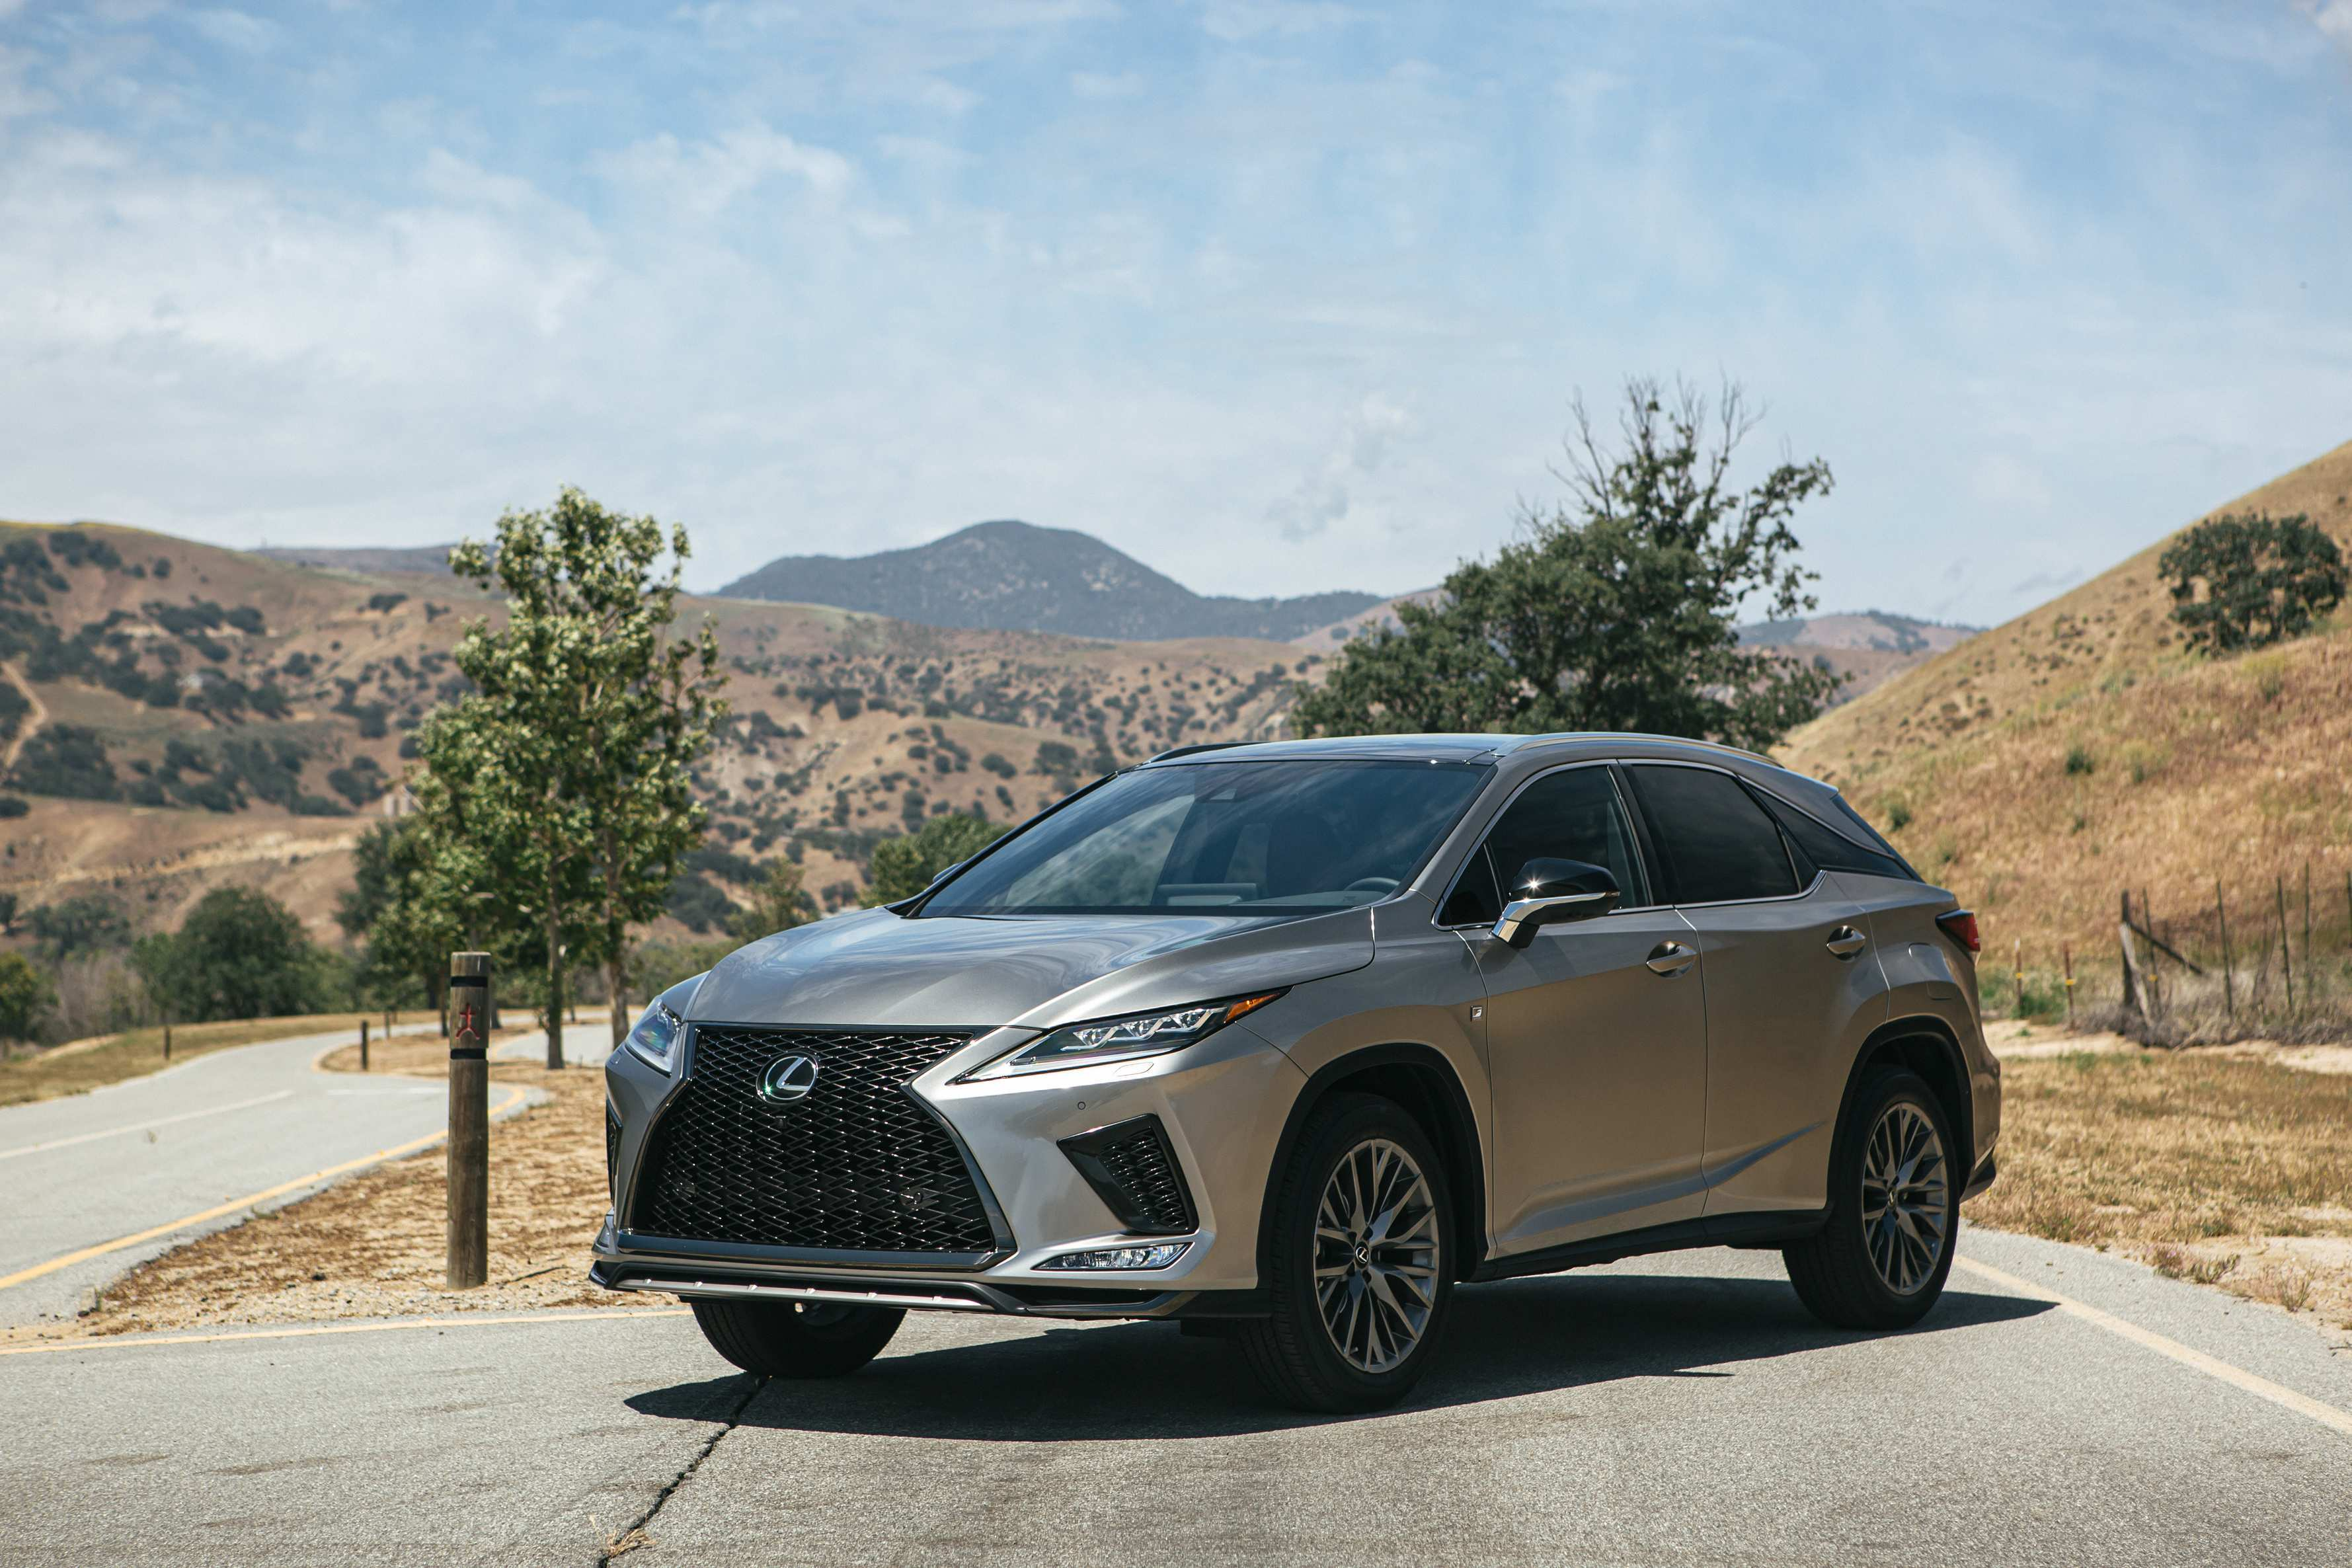 72 New Lexus Rx 350 Year 2020 Release with Lexus Rx 350 Year 2020